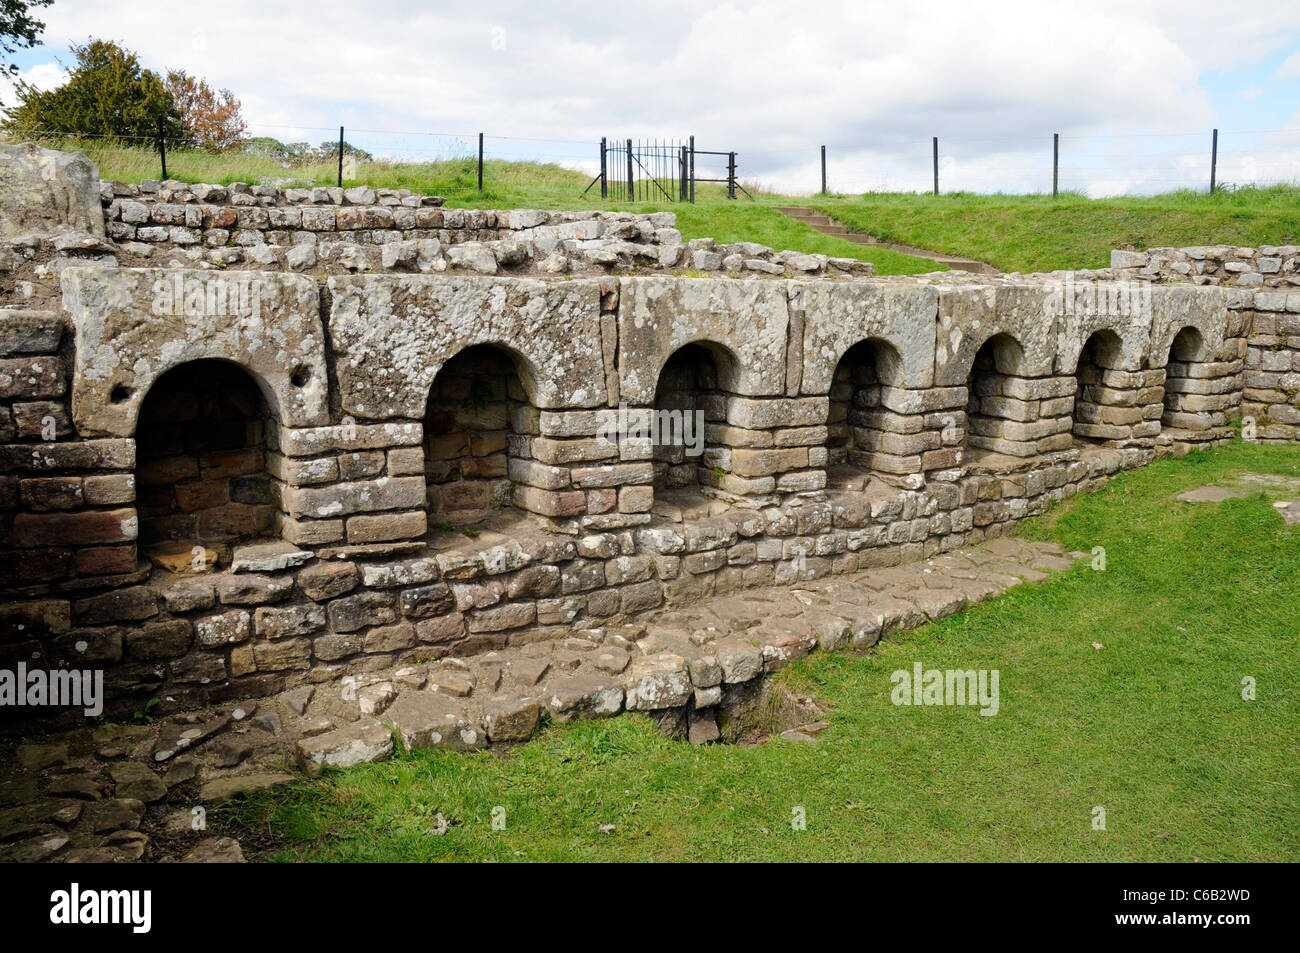 The changing room of Roman Bath House  ruins at Chesters Fort, on Hadrian's Wall, England. - Stock Image